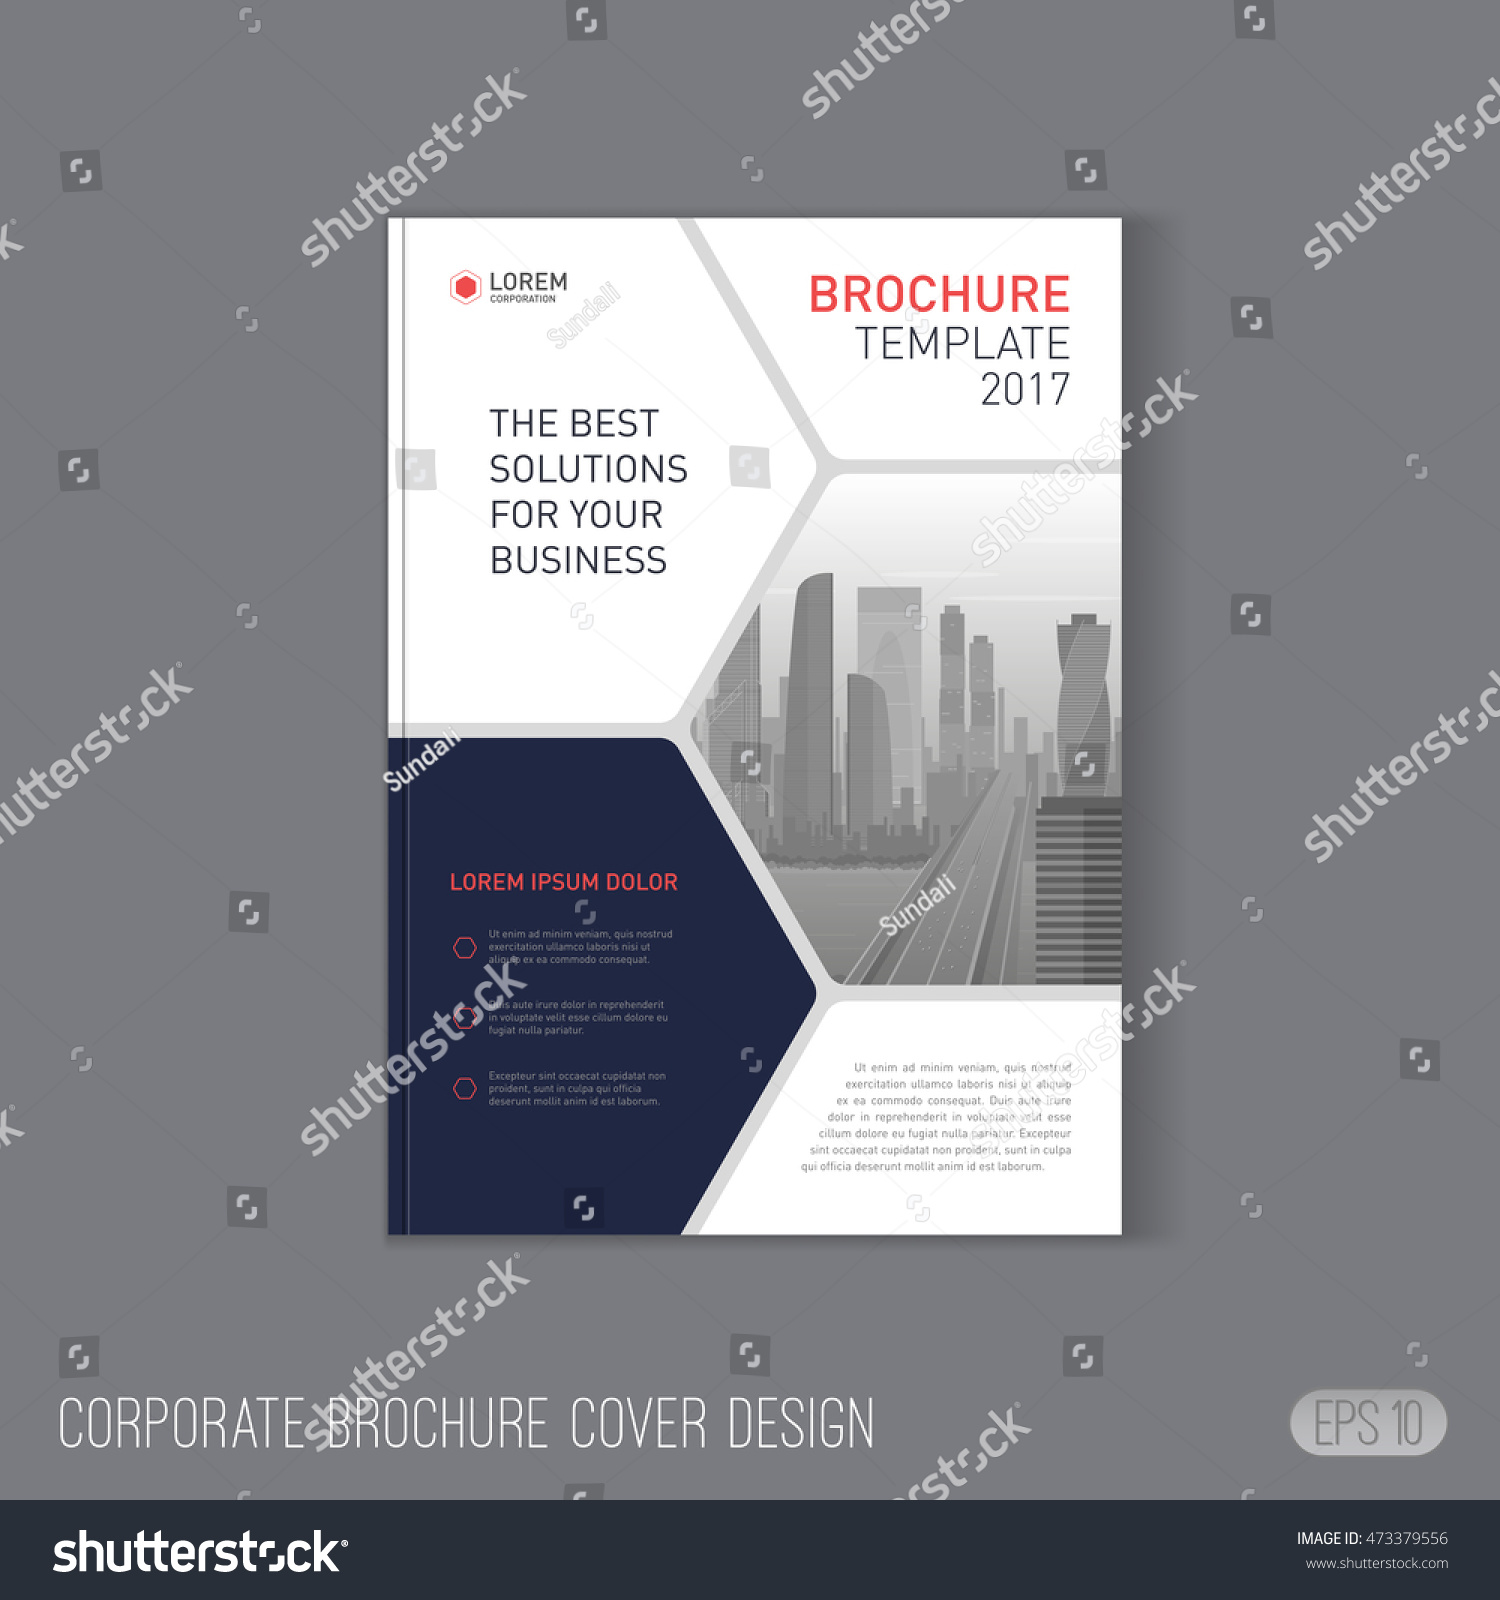 Corporate brochure cover design layout good stock vector for Nice brochure templates